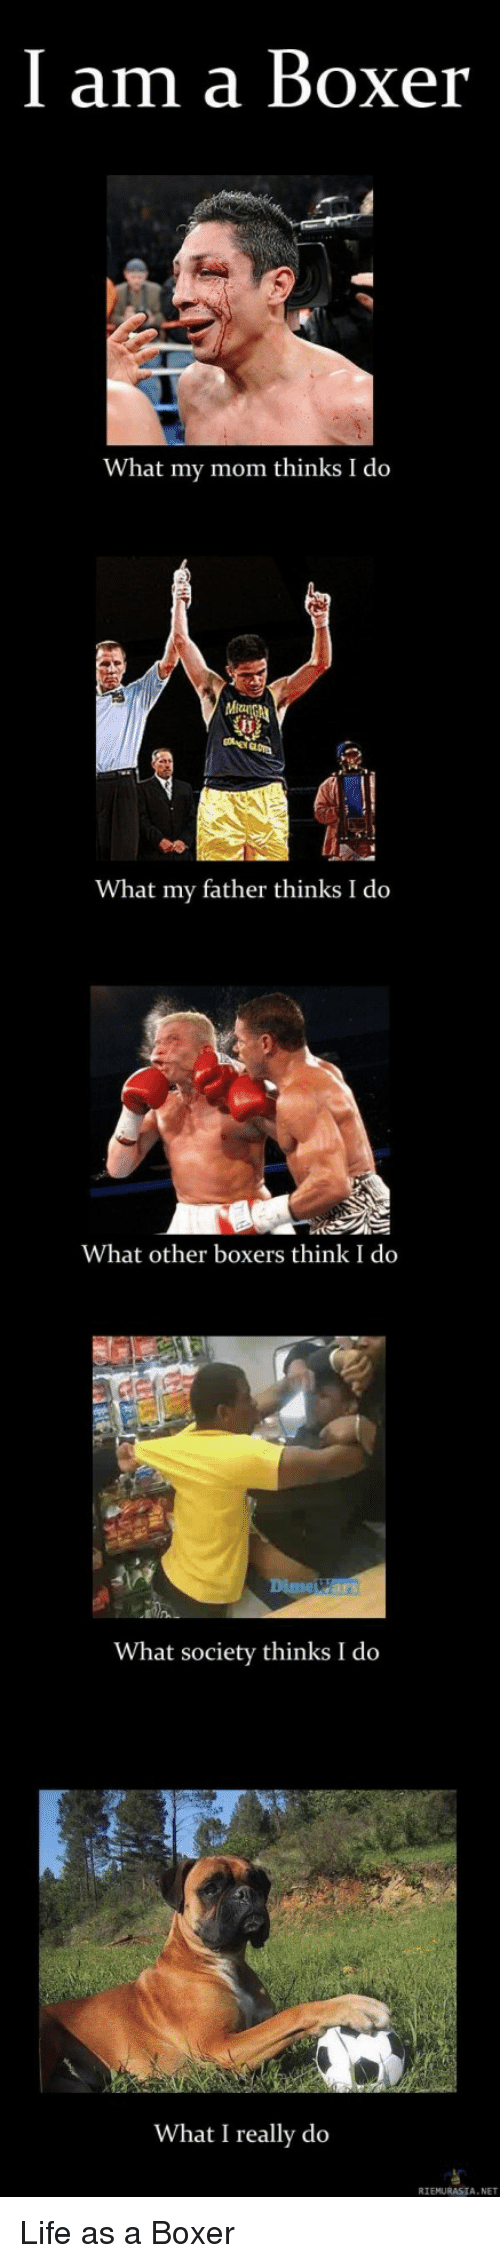 Life, Boxer, and What I Really Do: I am a Boxer  What my mom thinks I do  What my father thinks I do  What other boxers think I do  Dime Wars  What society thinks I do  What I really do  RIEMURASIA. NET Life as a Boxer